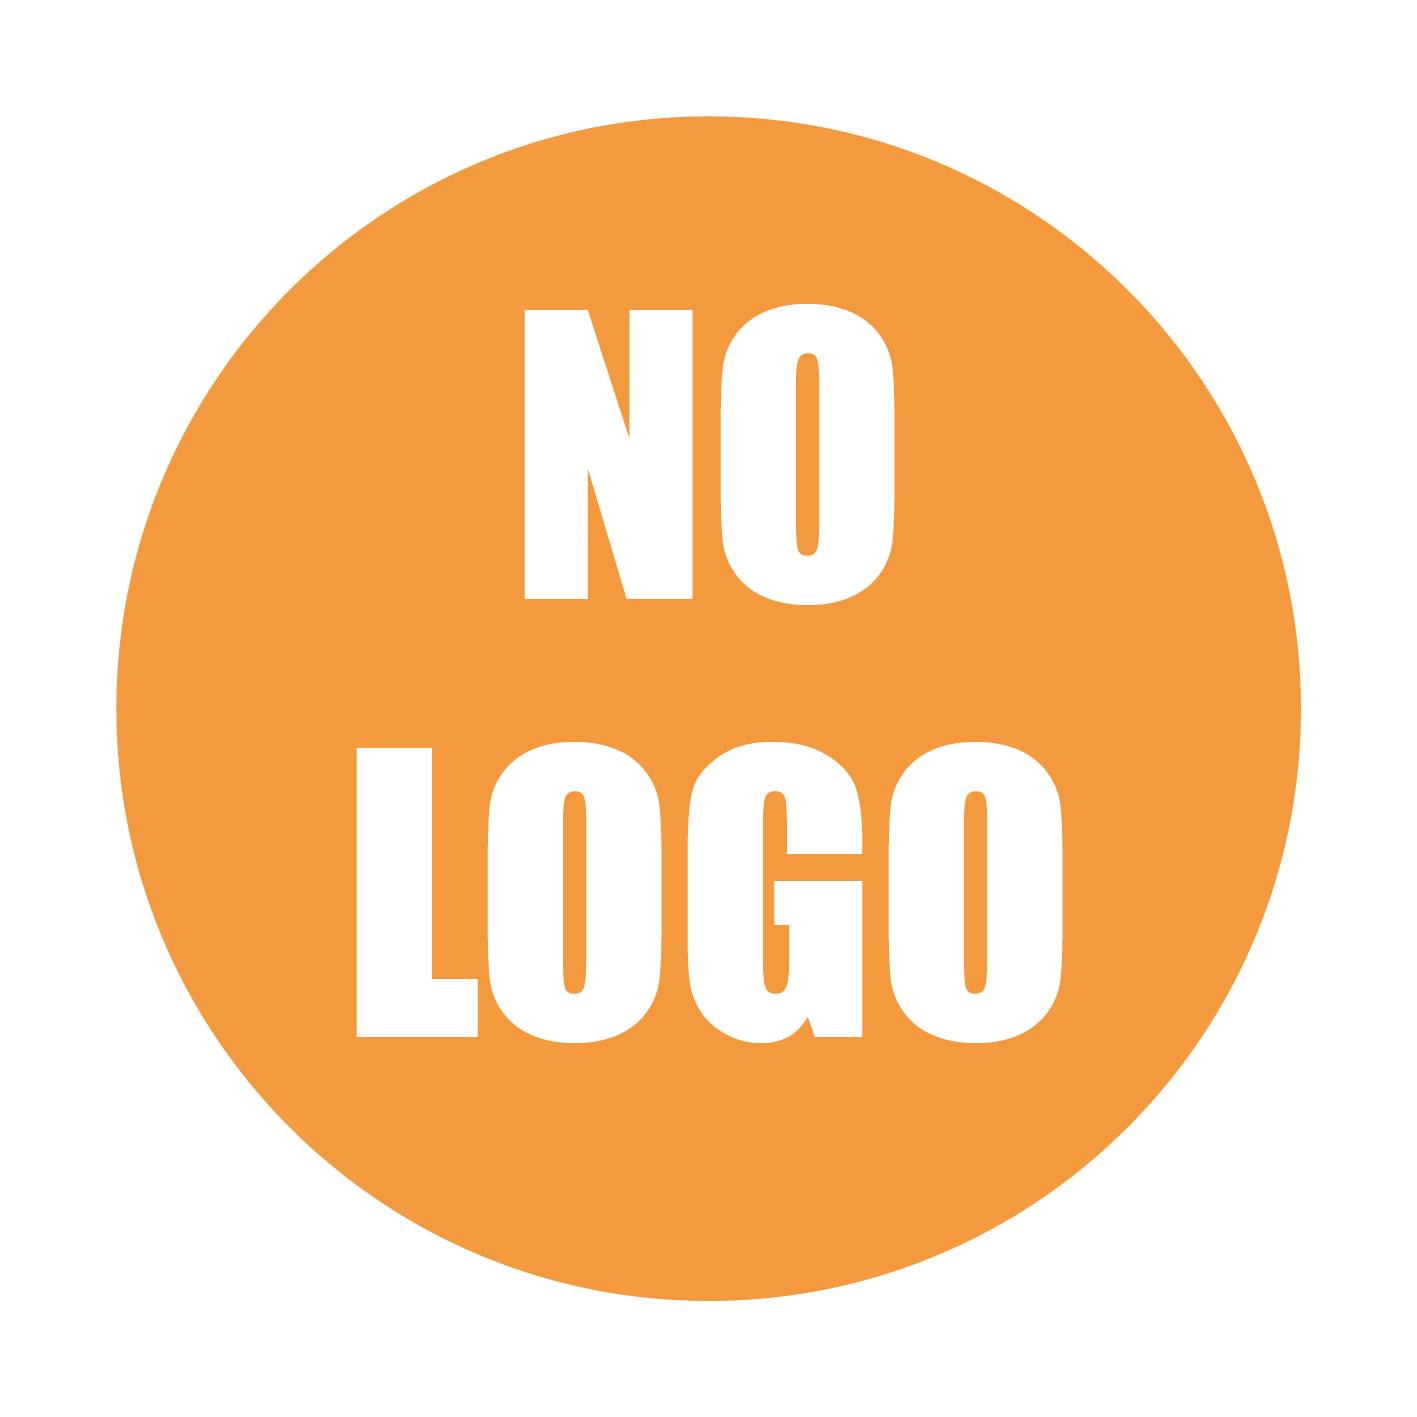 No logo png. April onthemarch co